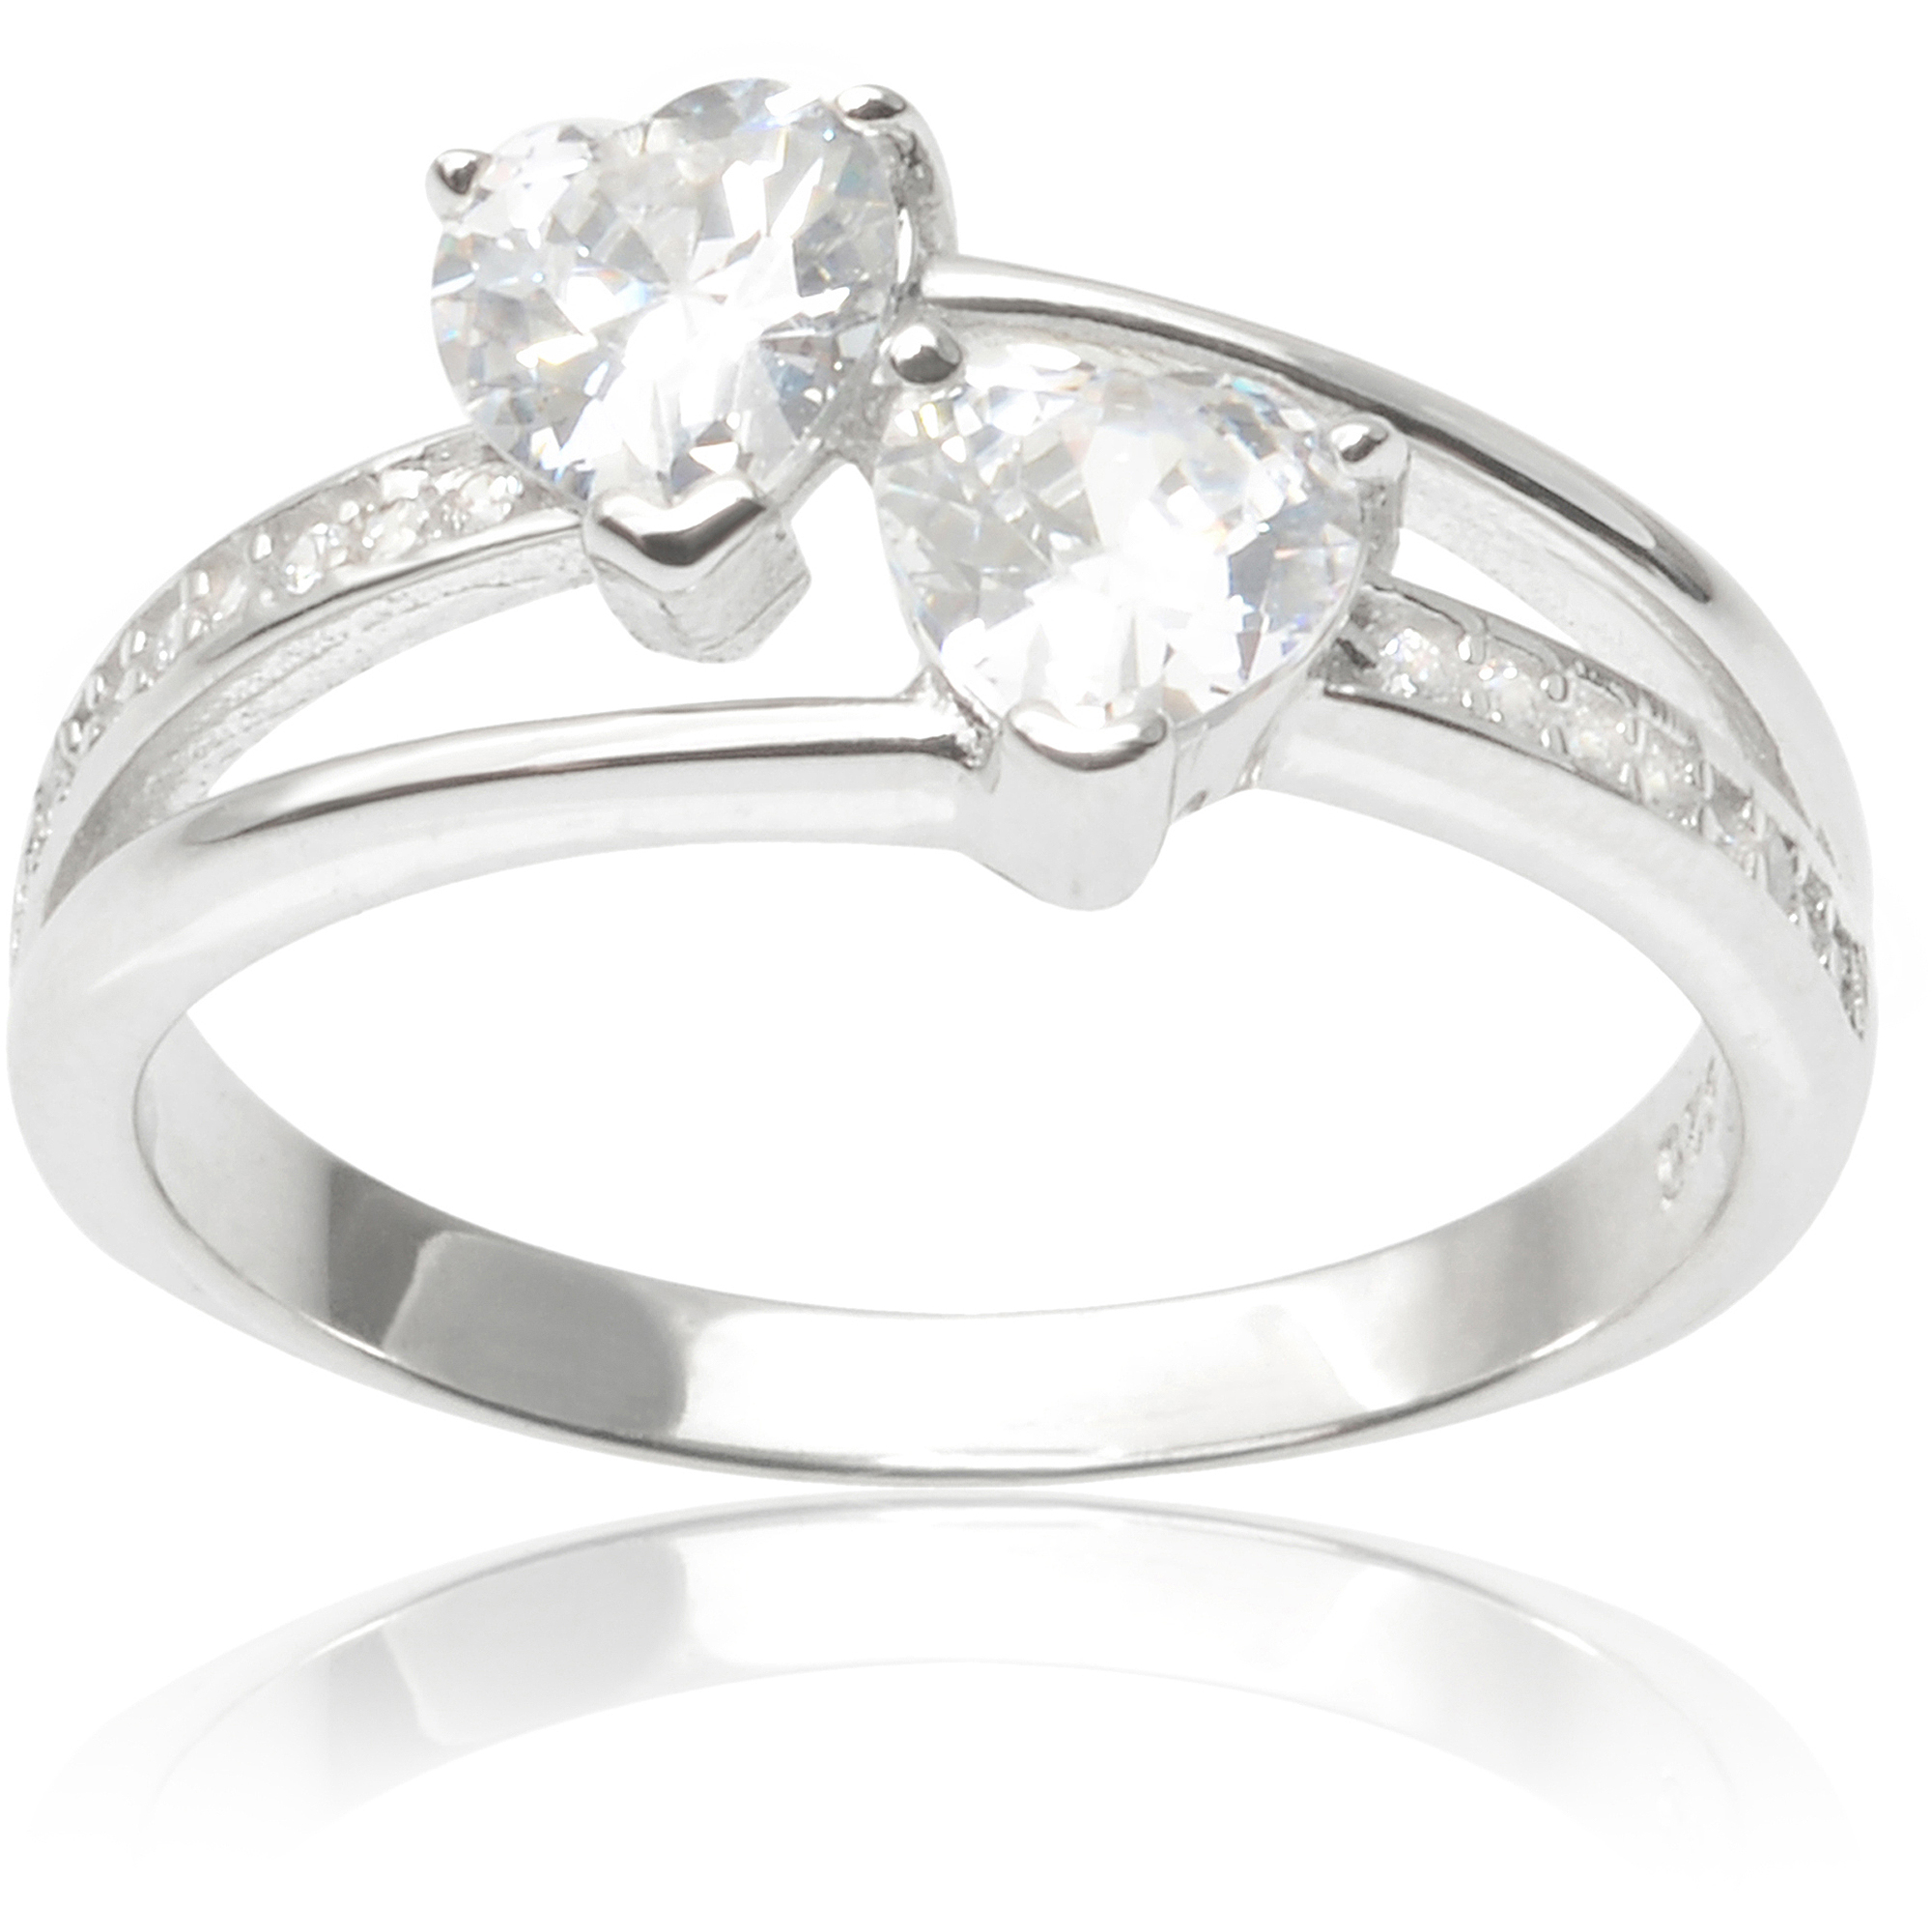 Alexandria Collection Sterling Silver 1-1/2 Carat T.G.W. Round Cubic Zirconia Double Heart Ring